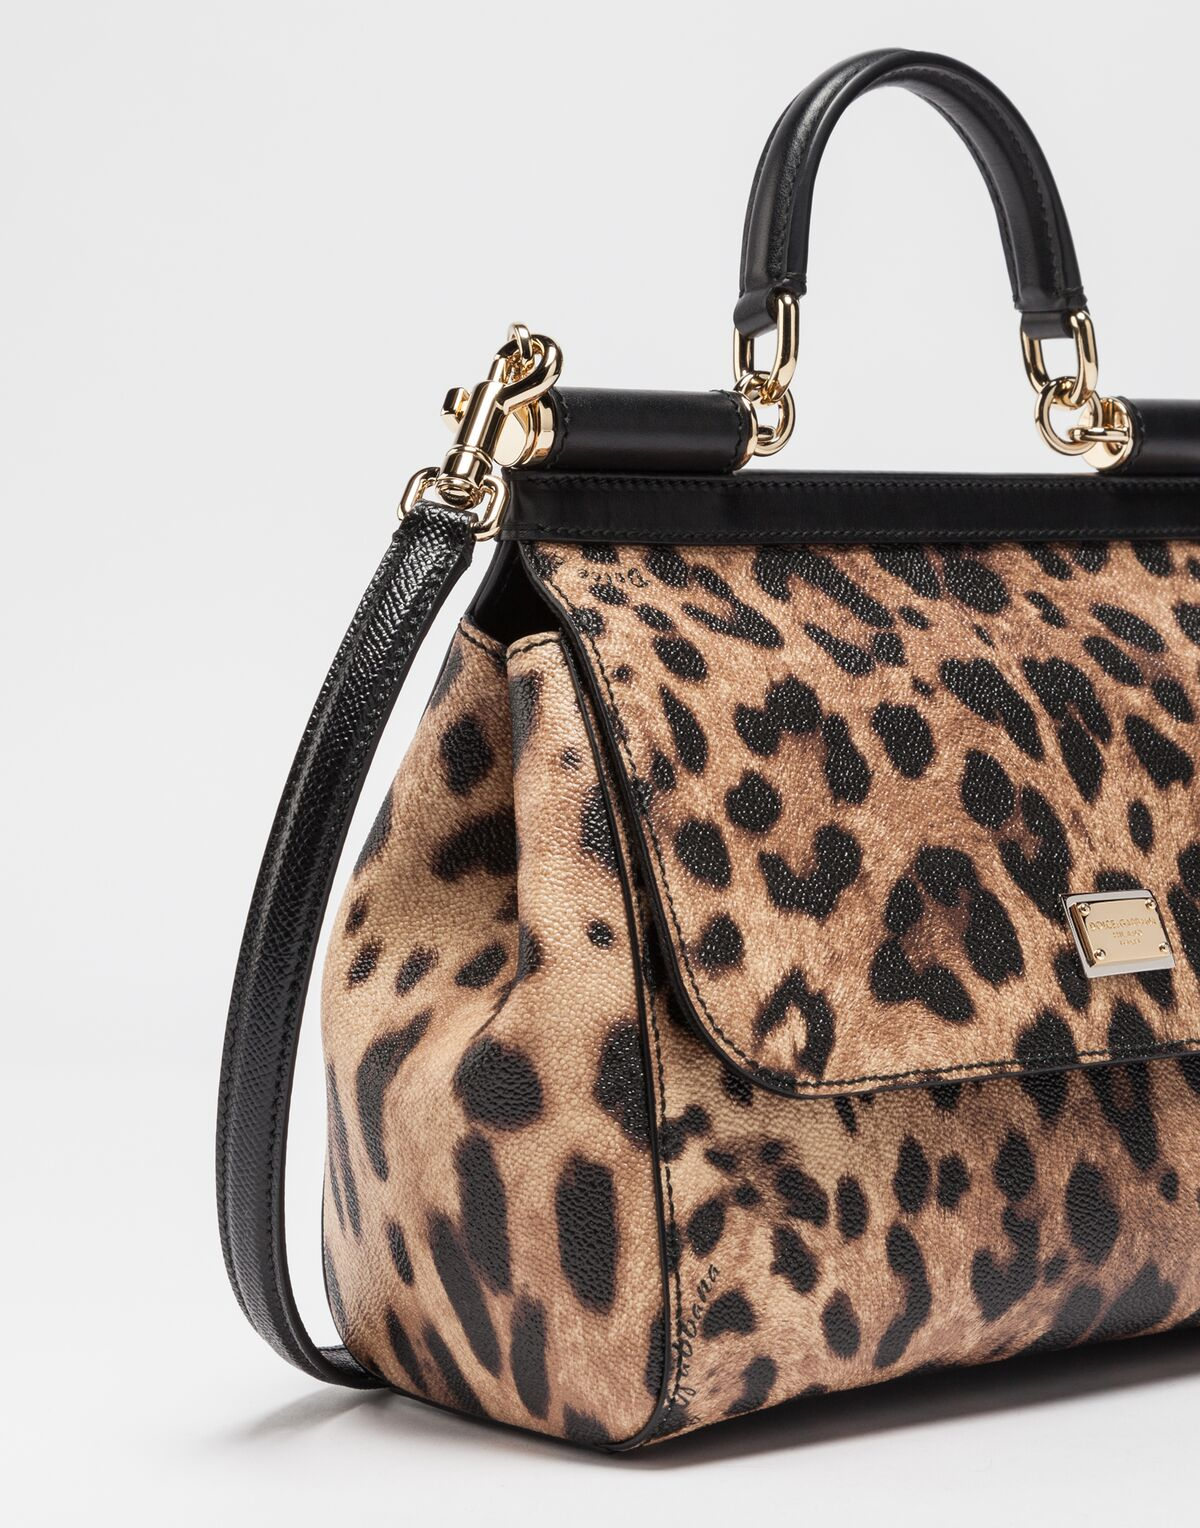 MEDIUM SICILY BAG IN LEOPARD TEXTURED LEATHER